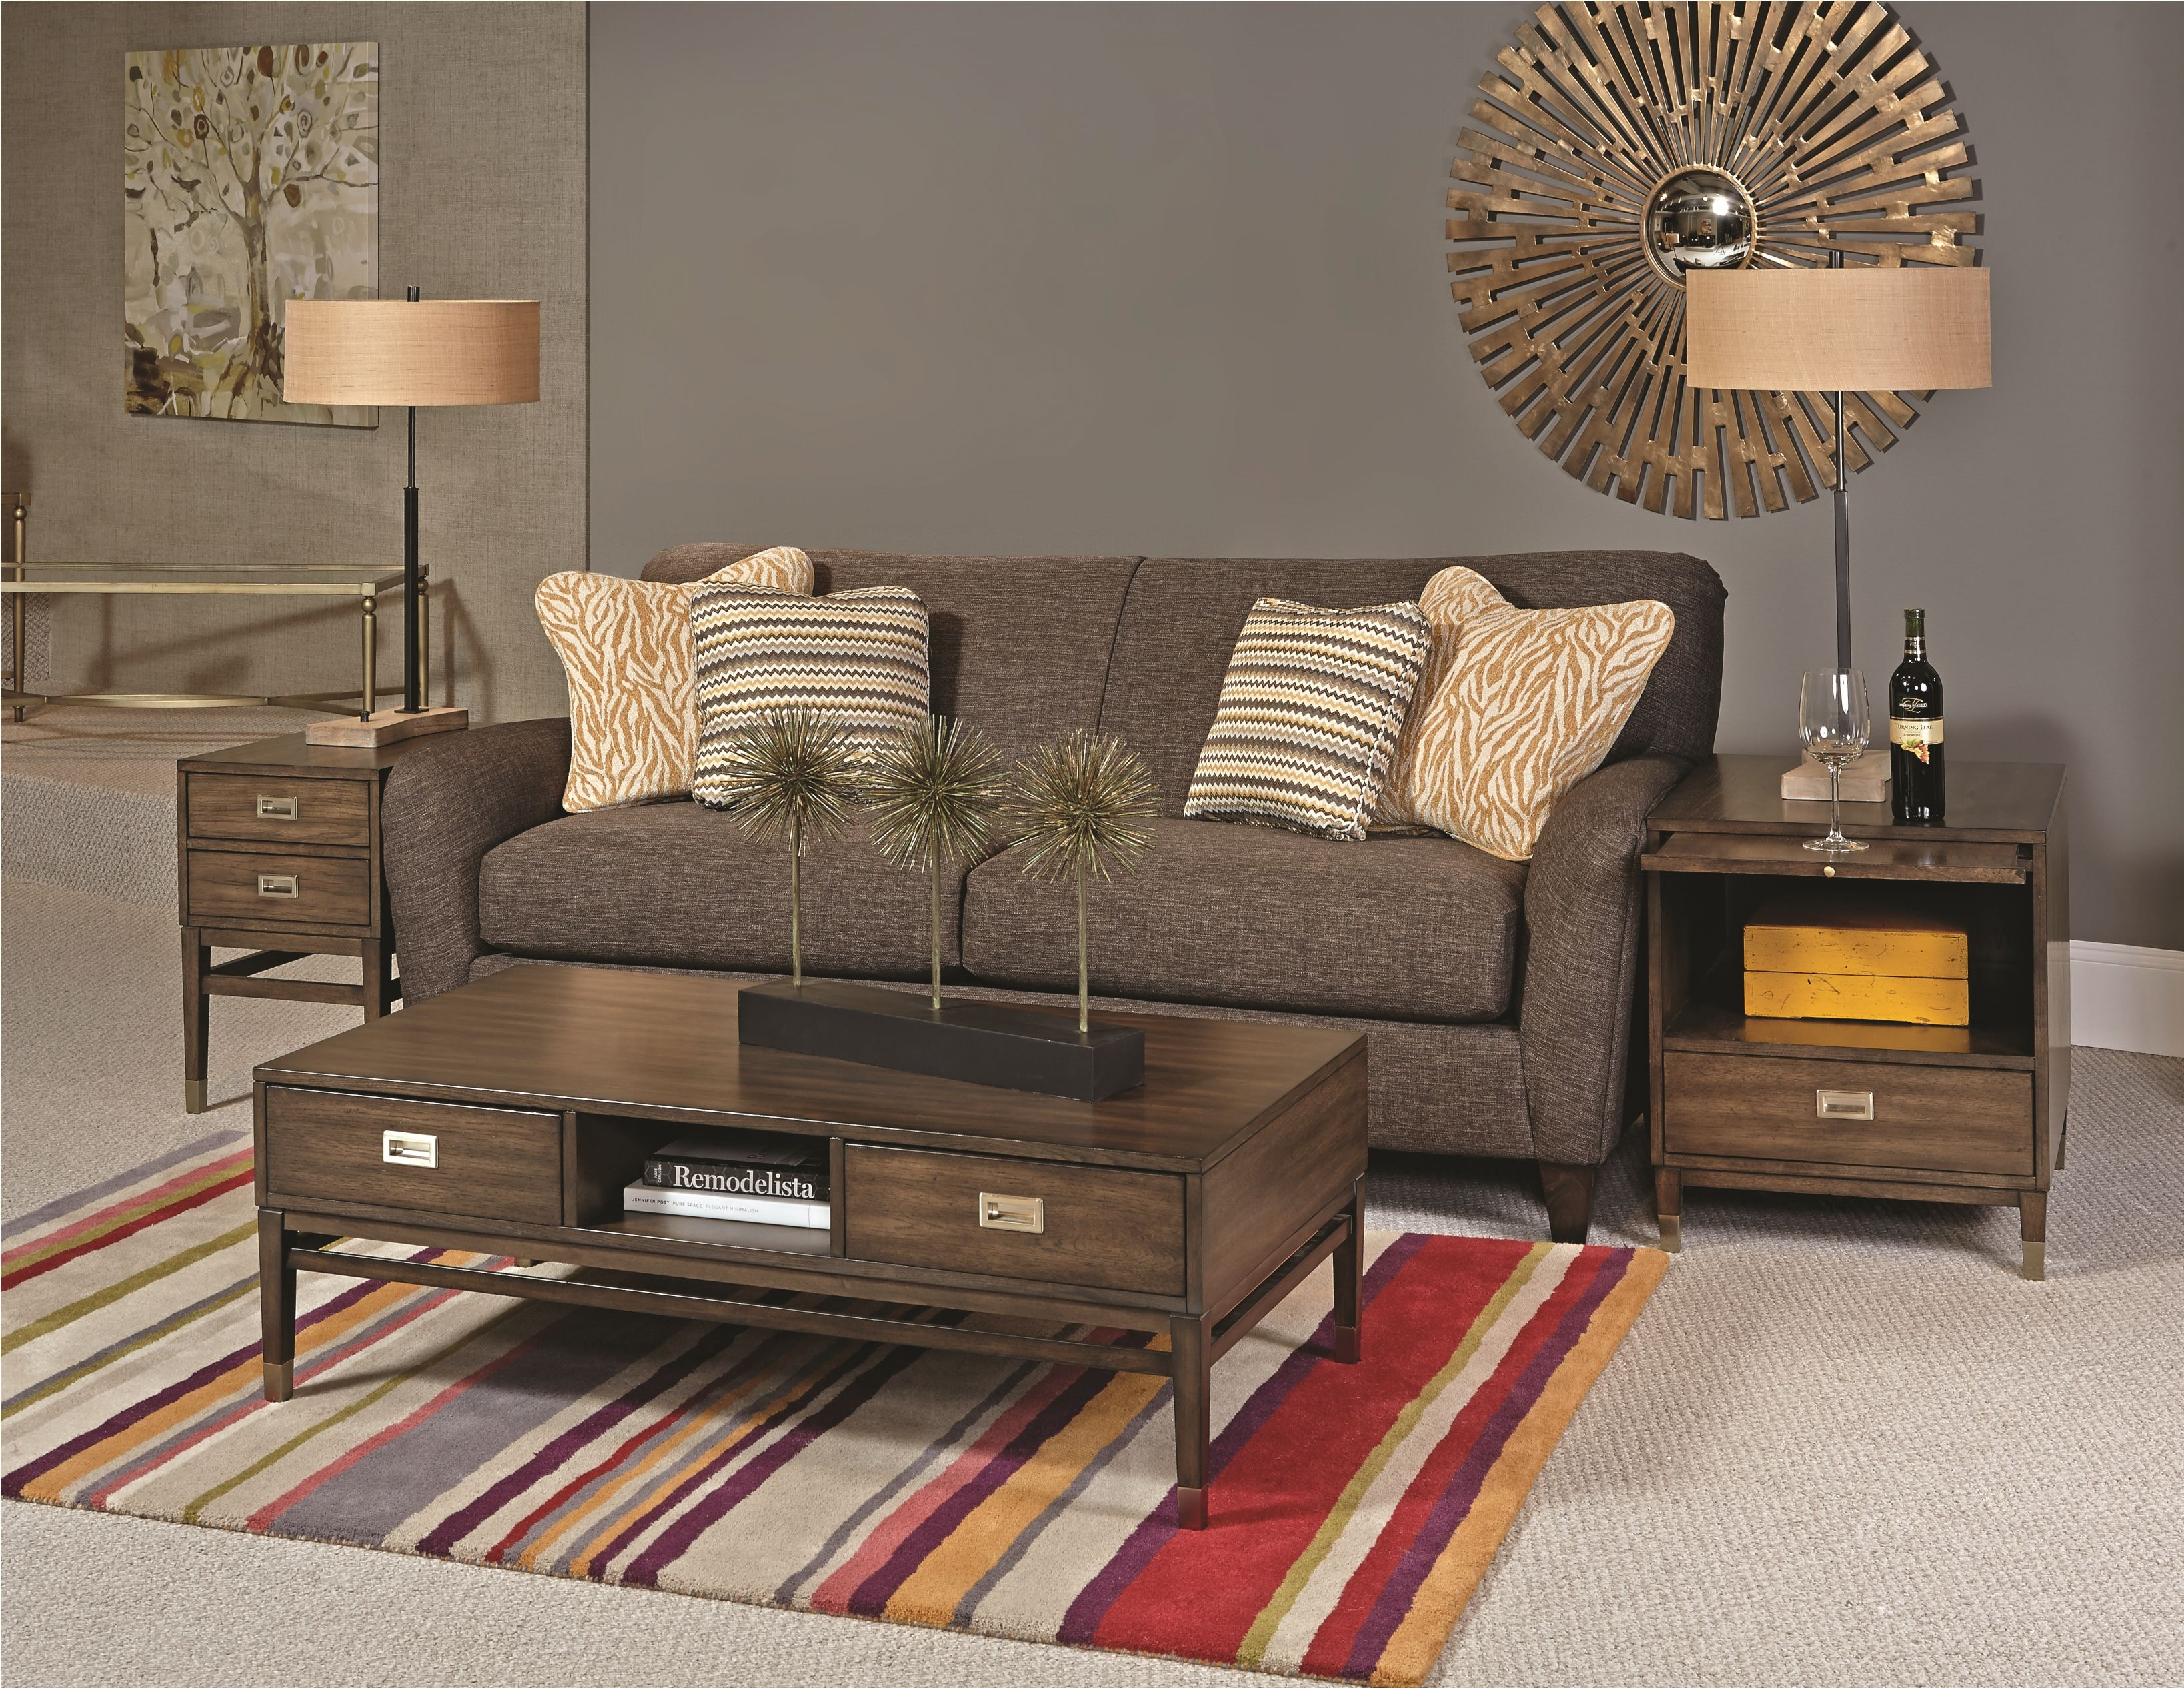 Hammary s Stratus collection incorporates updated mid century